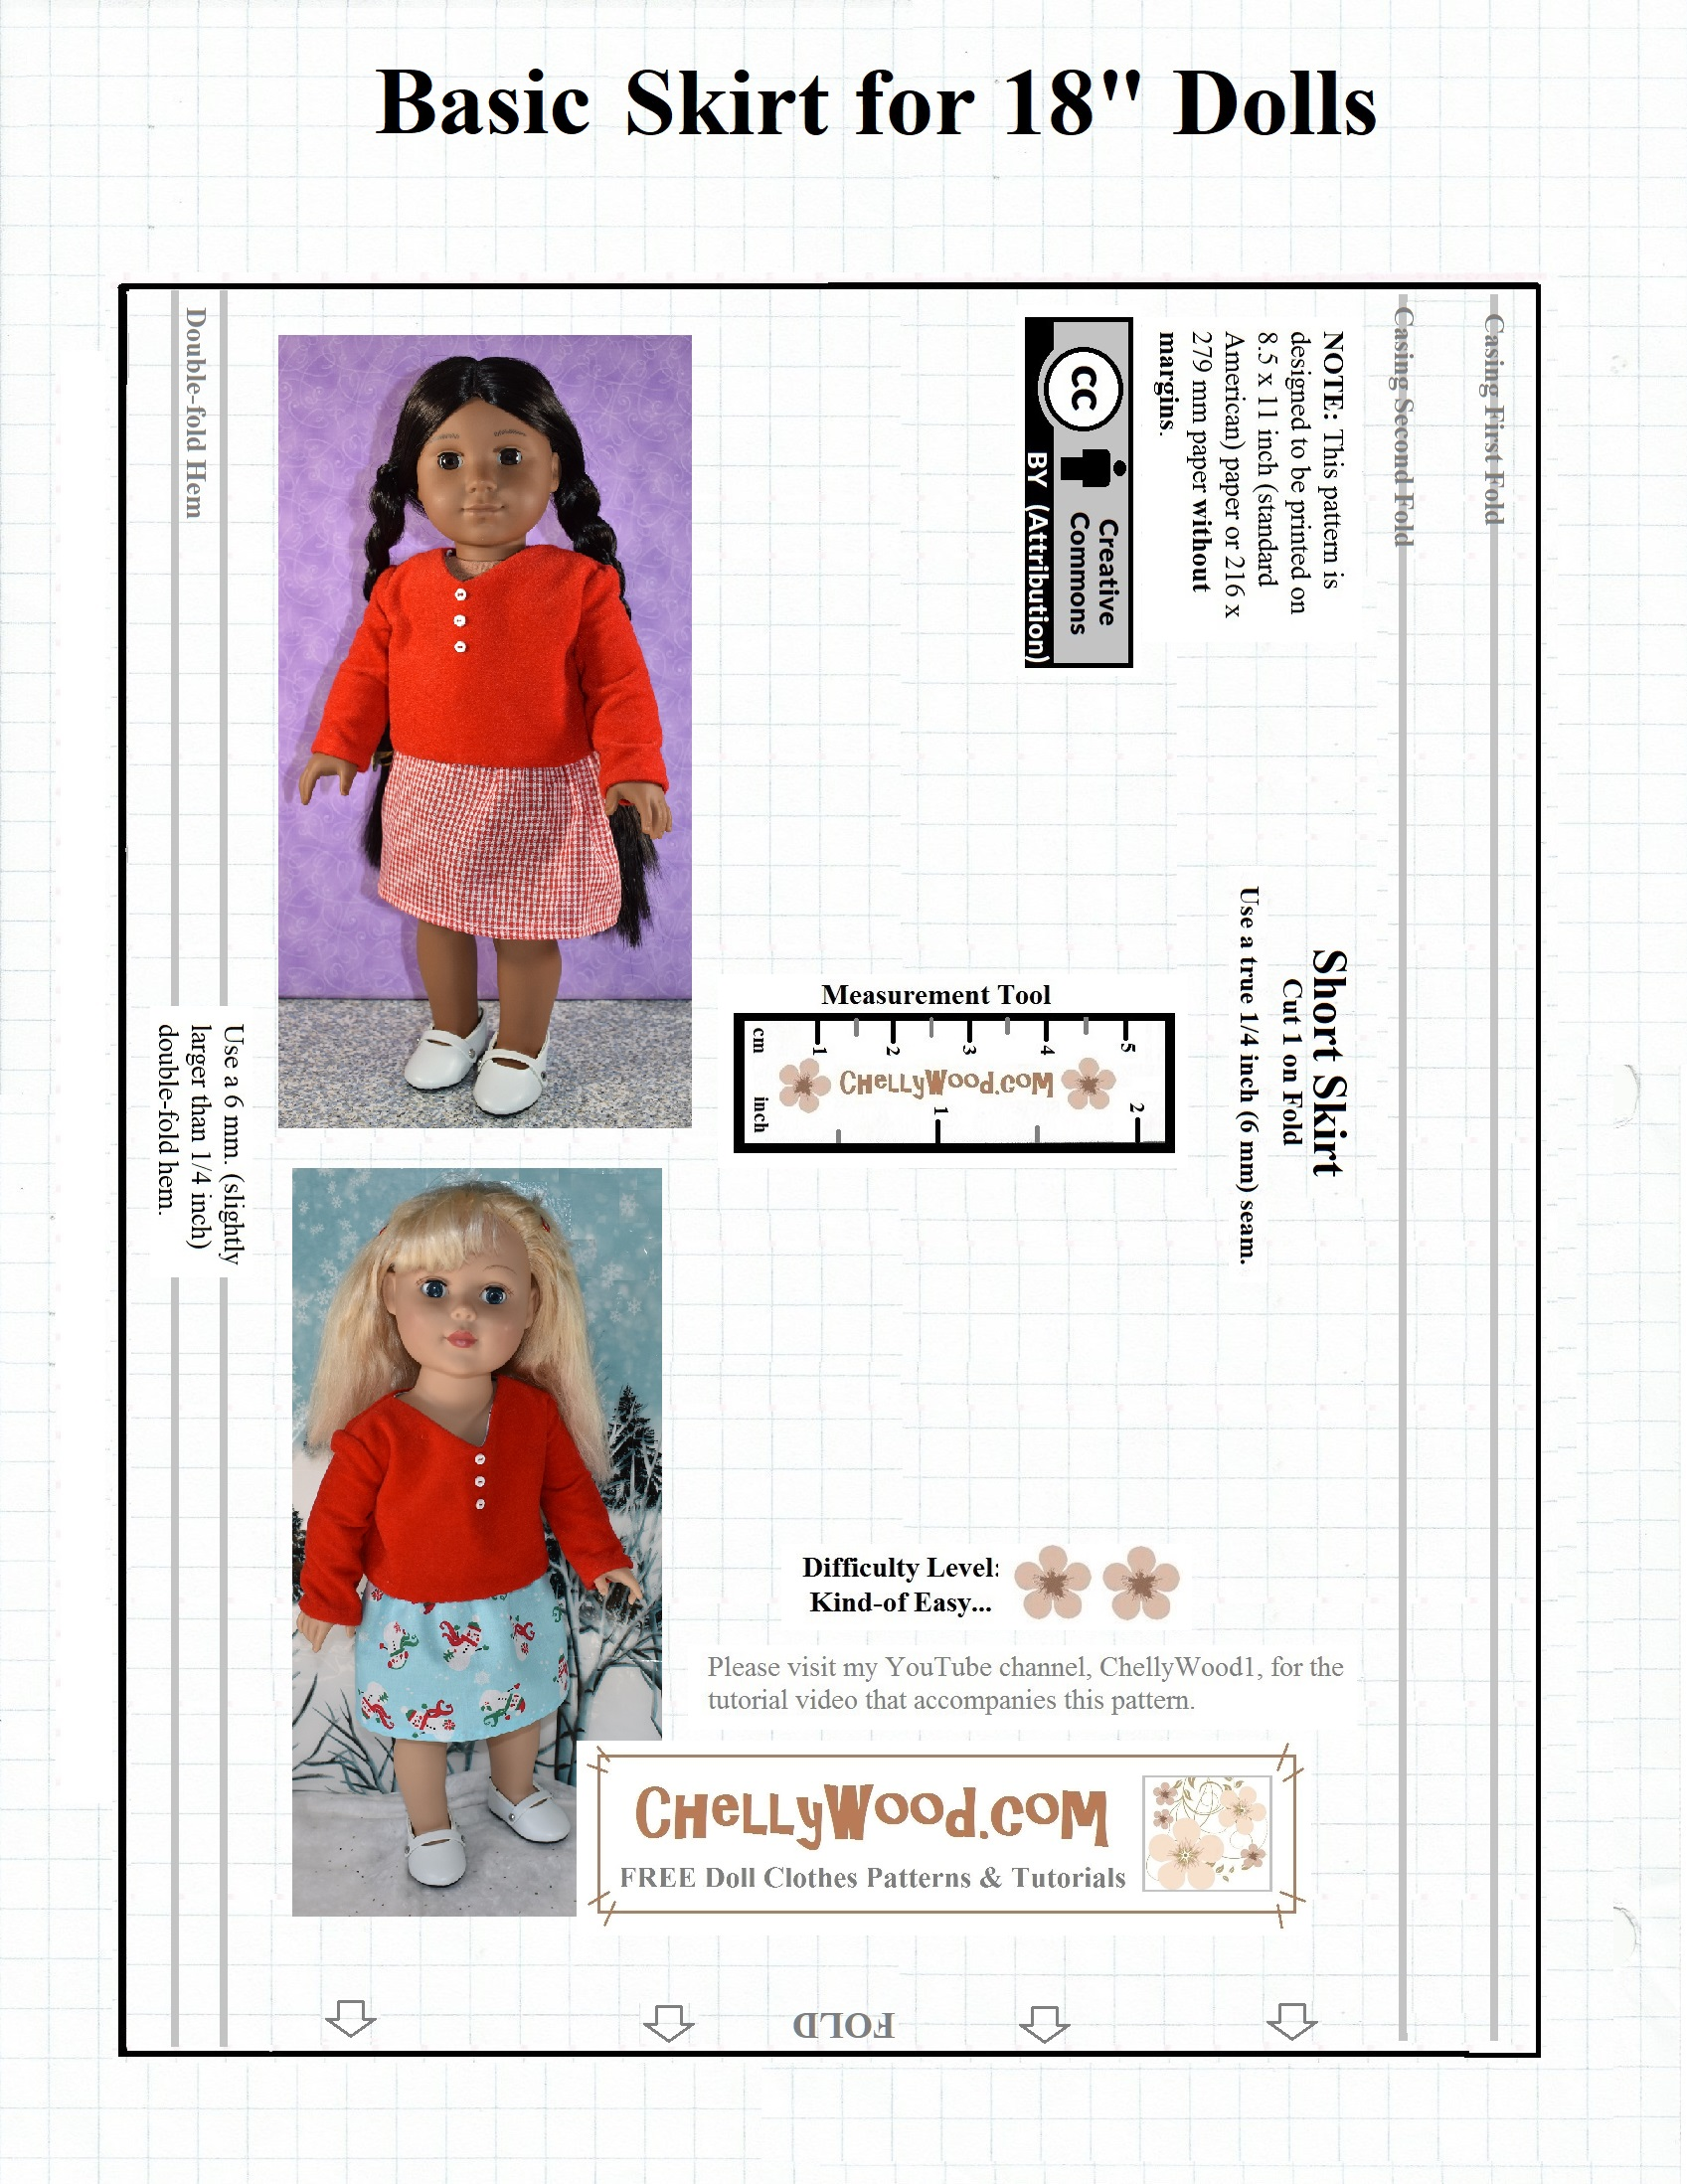 image about 18 Inch Doll Clothes Patterns Free Printable called Sew a Very simple Skirt for 18 Dolls w/Cost-free Behavior @ CyWood